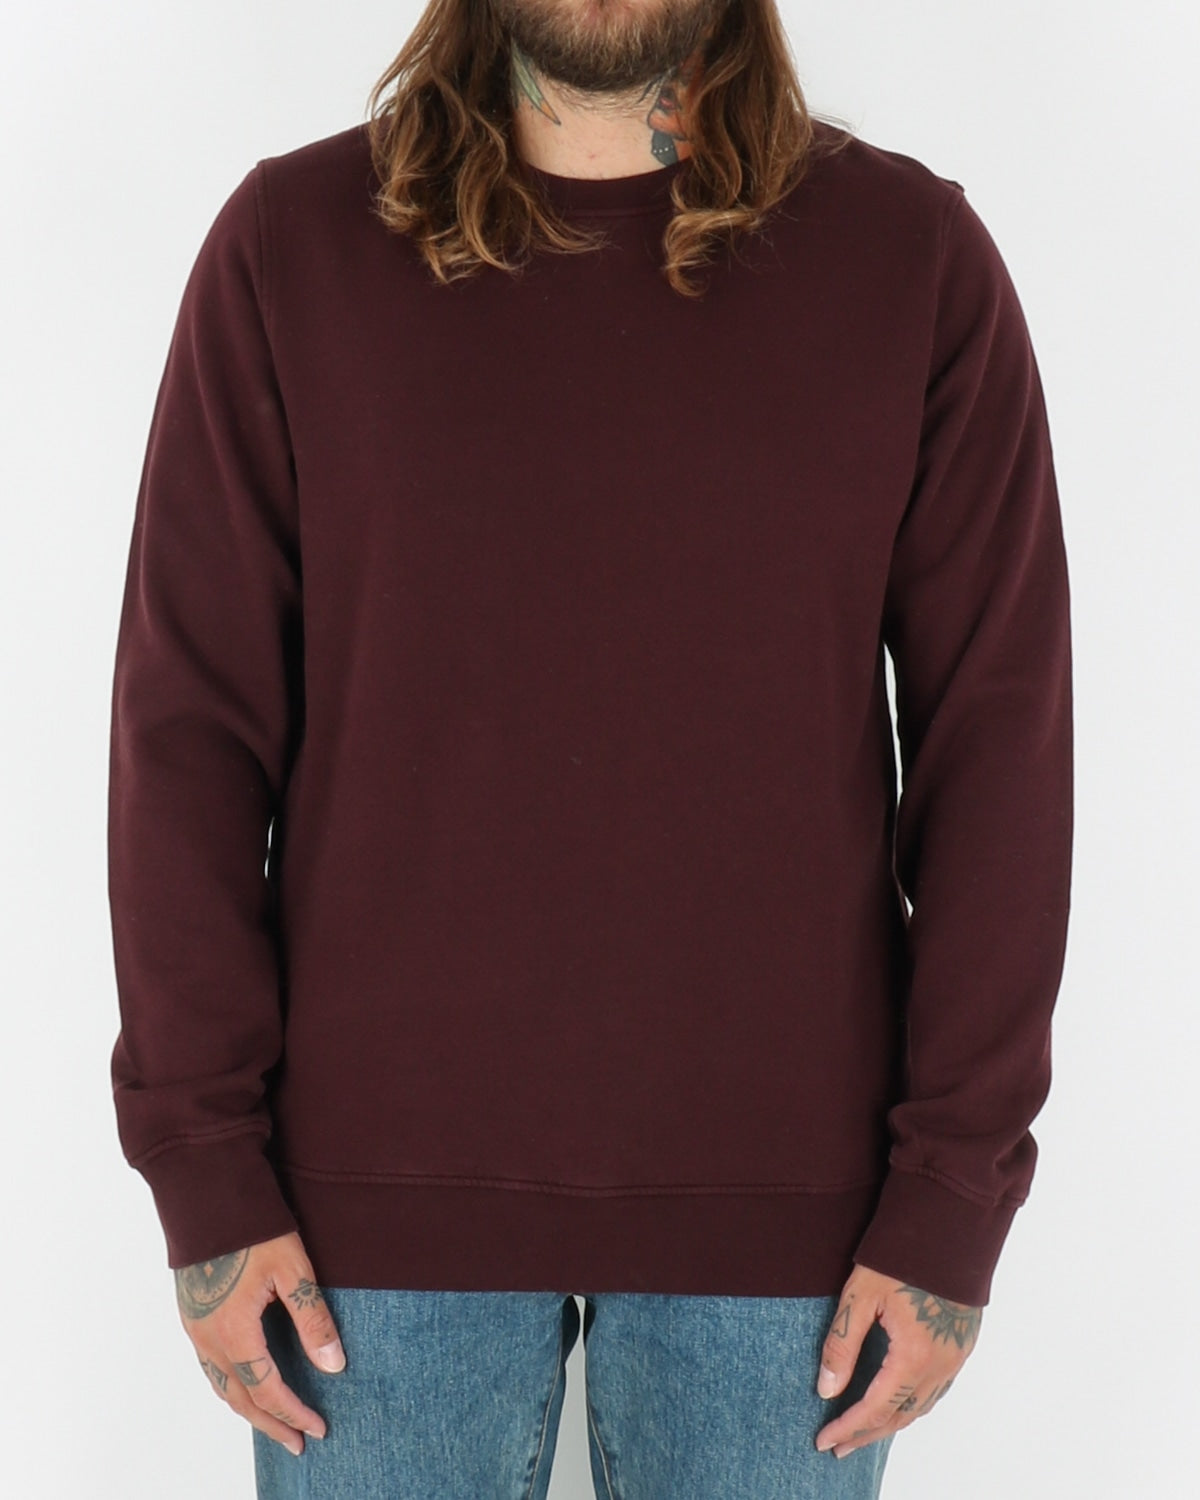 colorful standard_classic organic crew neck_oxblood red_1_2